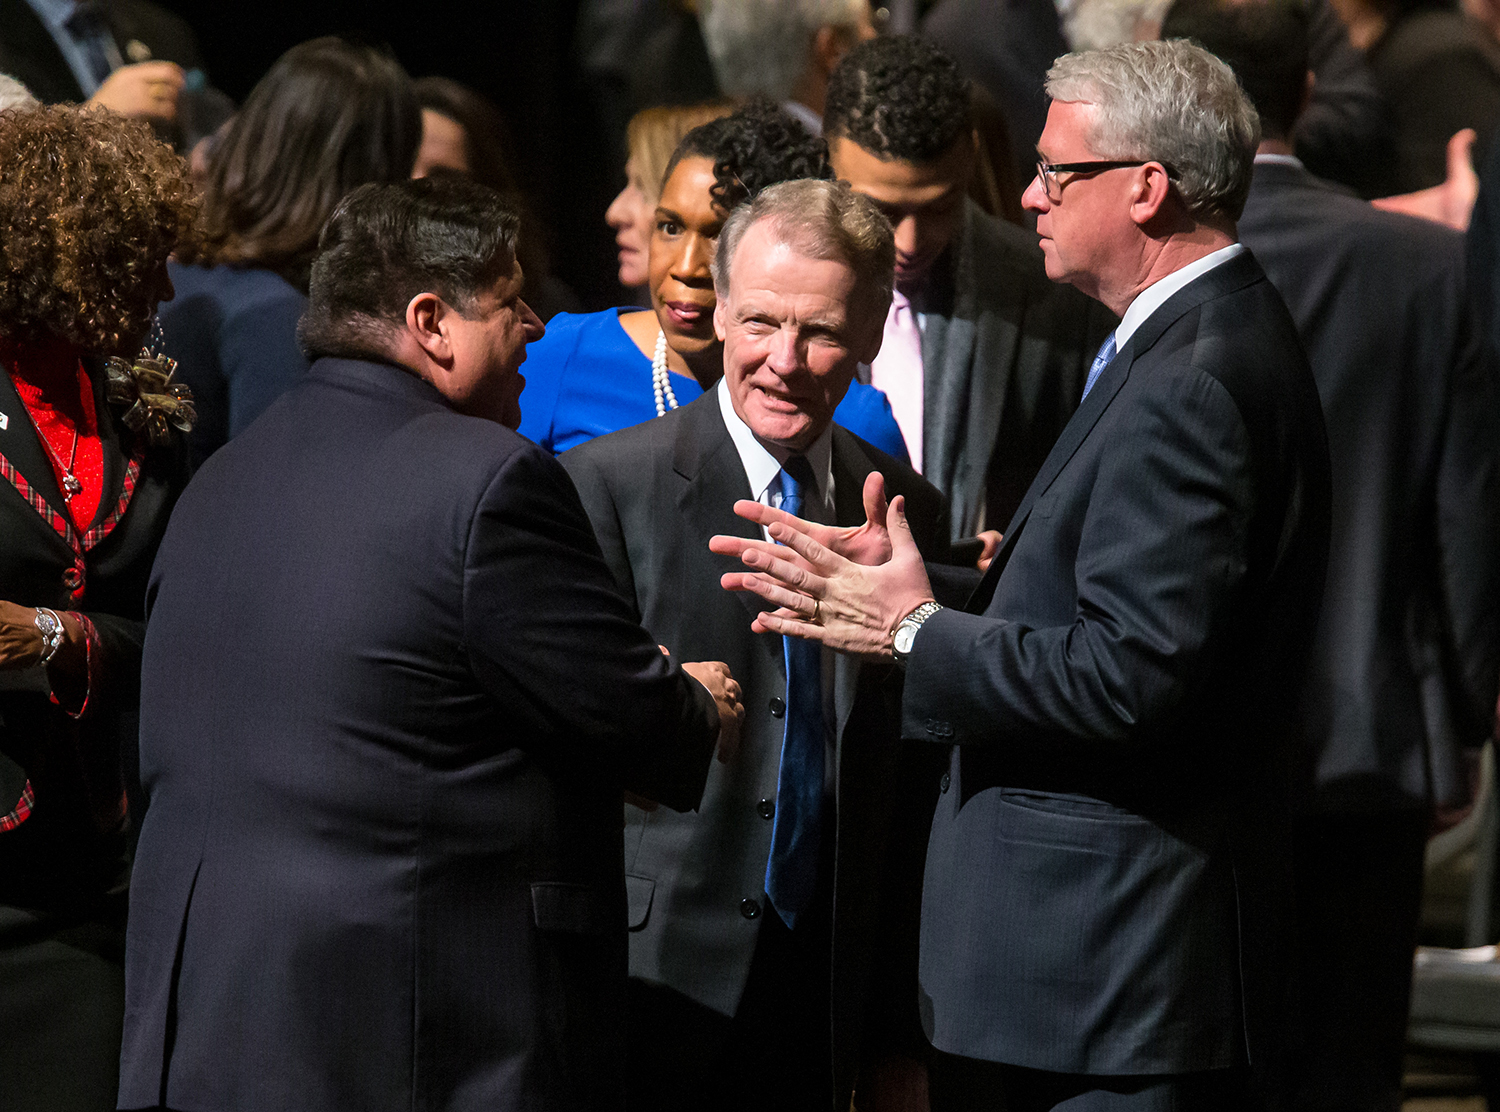 Illinois Speaker of the House Michael Madigan, D-Chicago, visits with Illinois House Minority Leader Jim Durkin, R-Western Springs, and Illinois Gov.-elect J.B. Pritzker prior to to the inauguration ceremony for the Illinois House of Representatives for the 101st General Assembly at the University of Illinois Springfield's Sangamon Auditorium, Wednesday, Jan. 9, 2019, in Springfield, Ill. [Justin L. Fowler/The State Journal-Register]